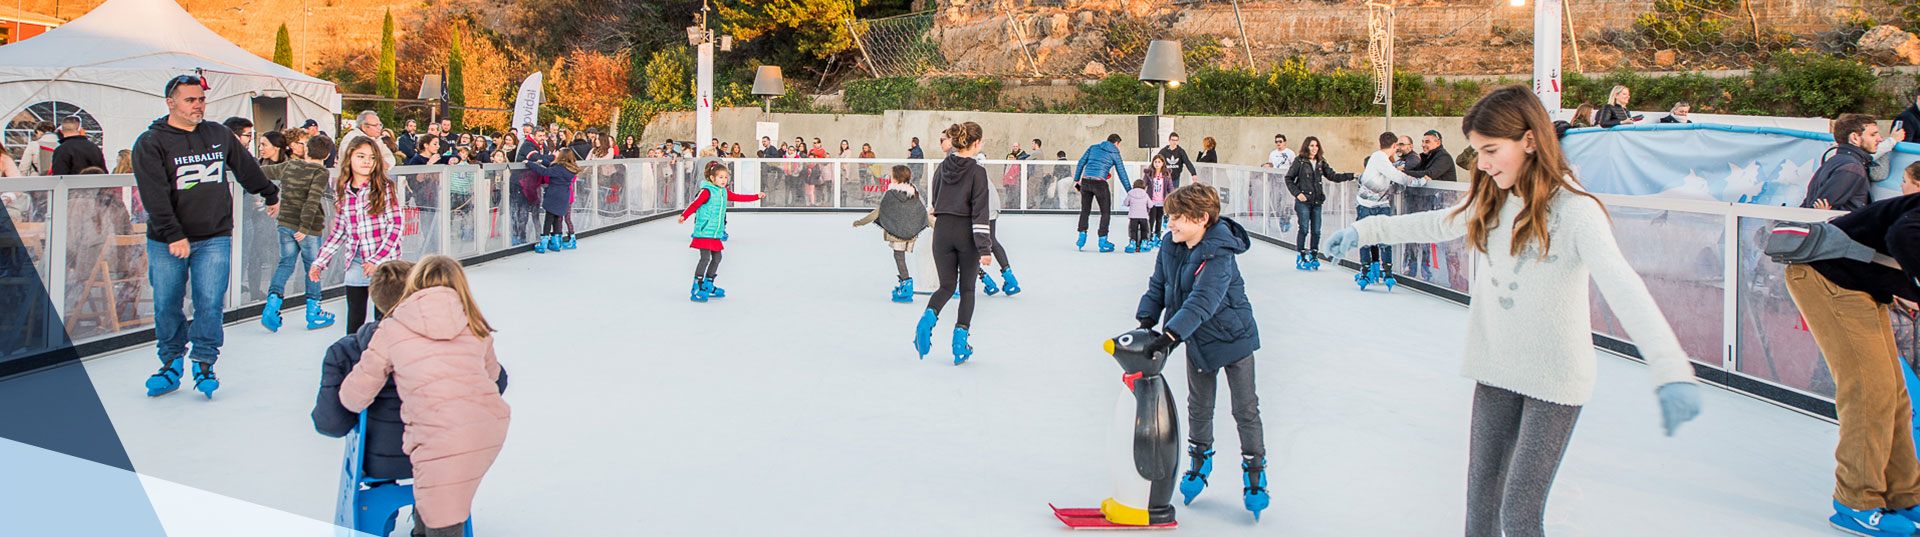 Leisure synthetic ice rink